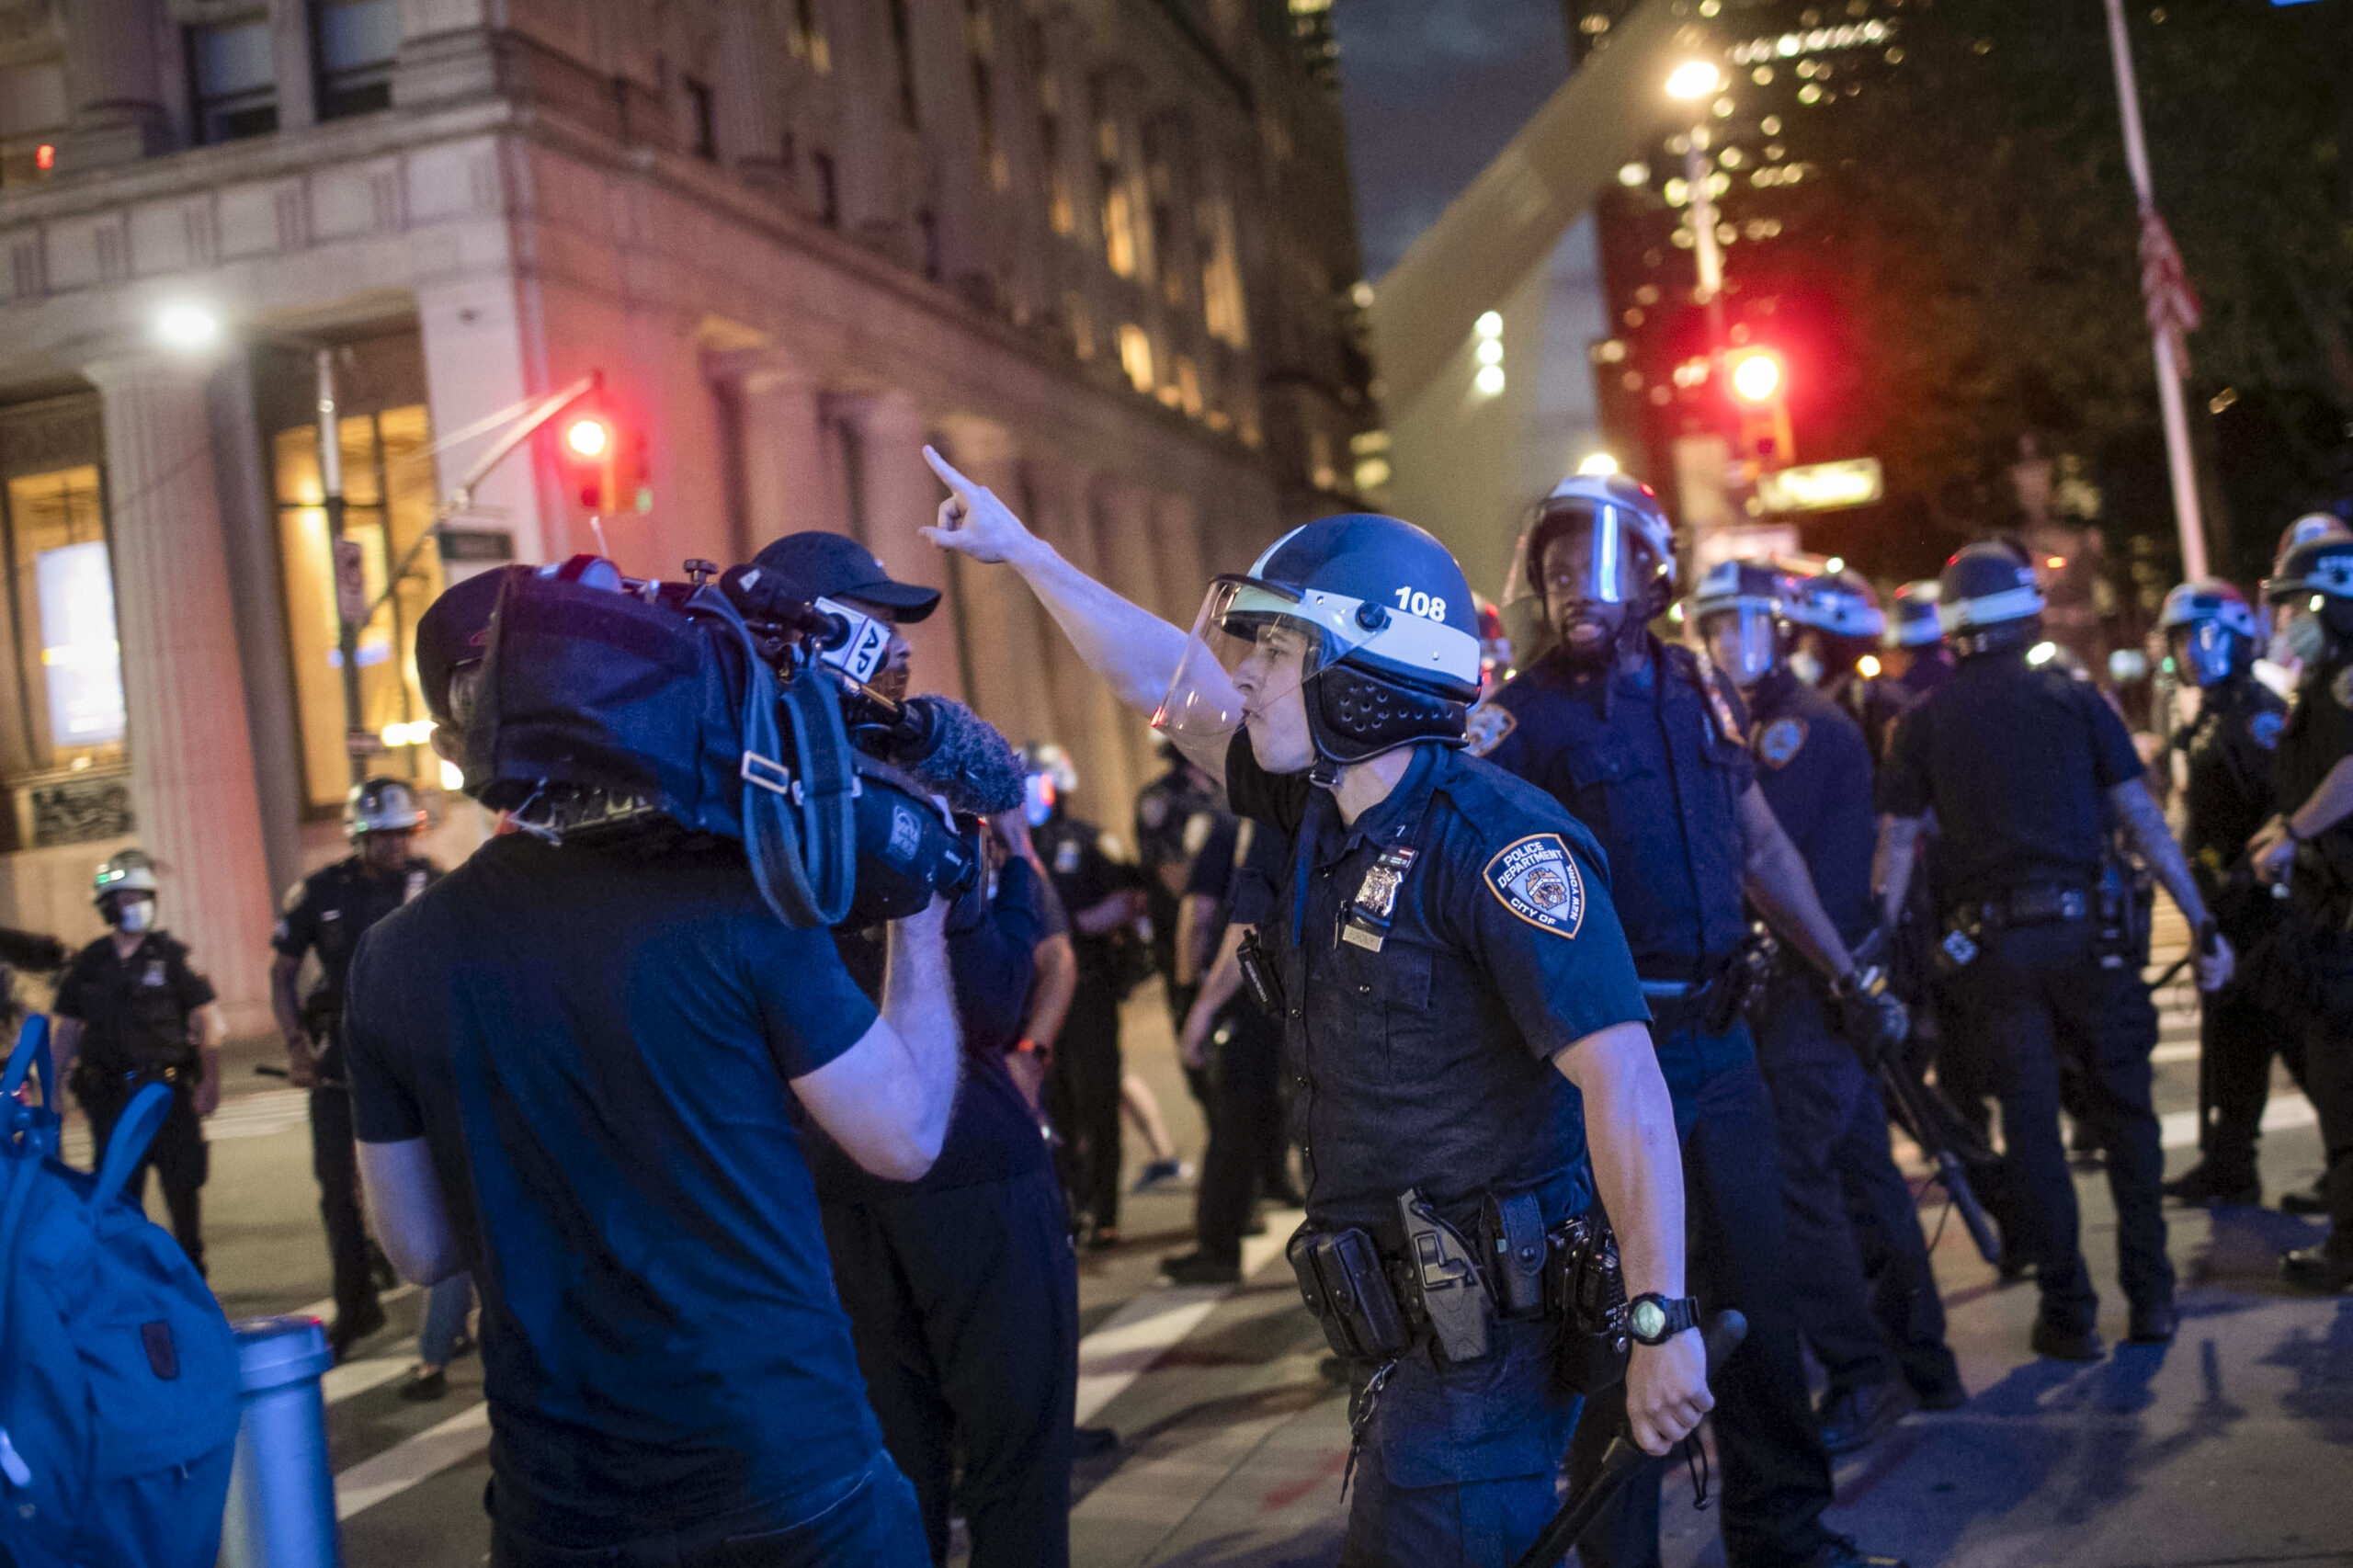 Photo of NYPD officer confronting AP photographer during protests in New York City